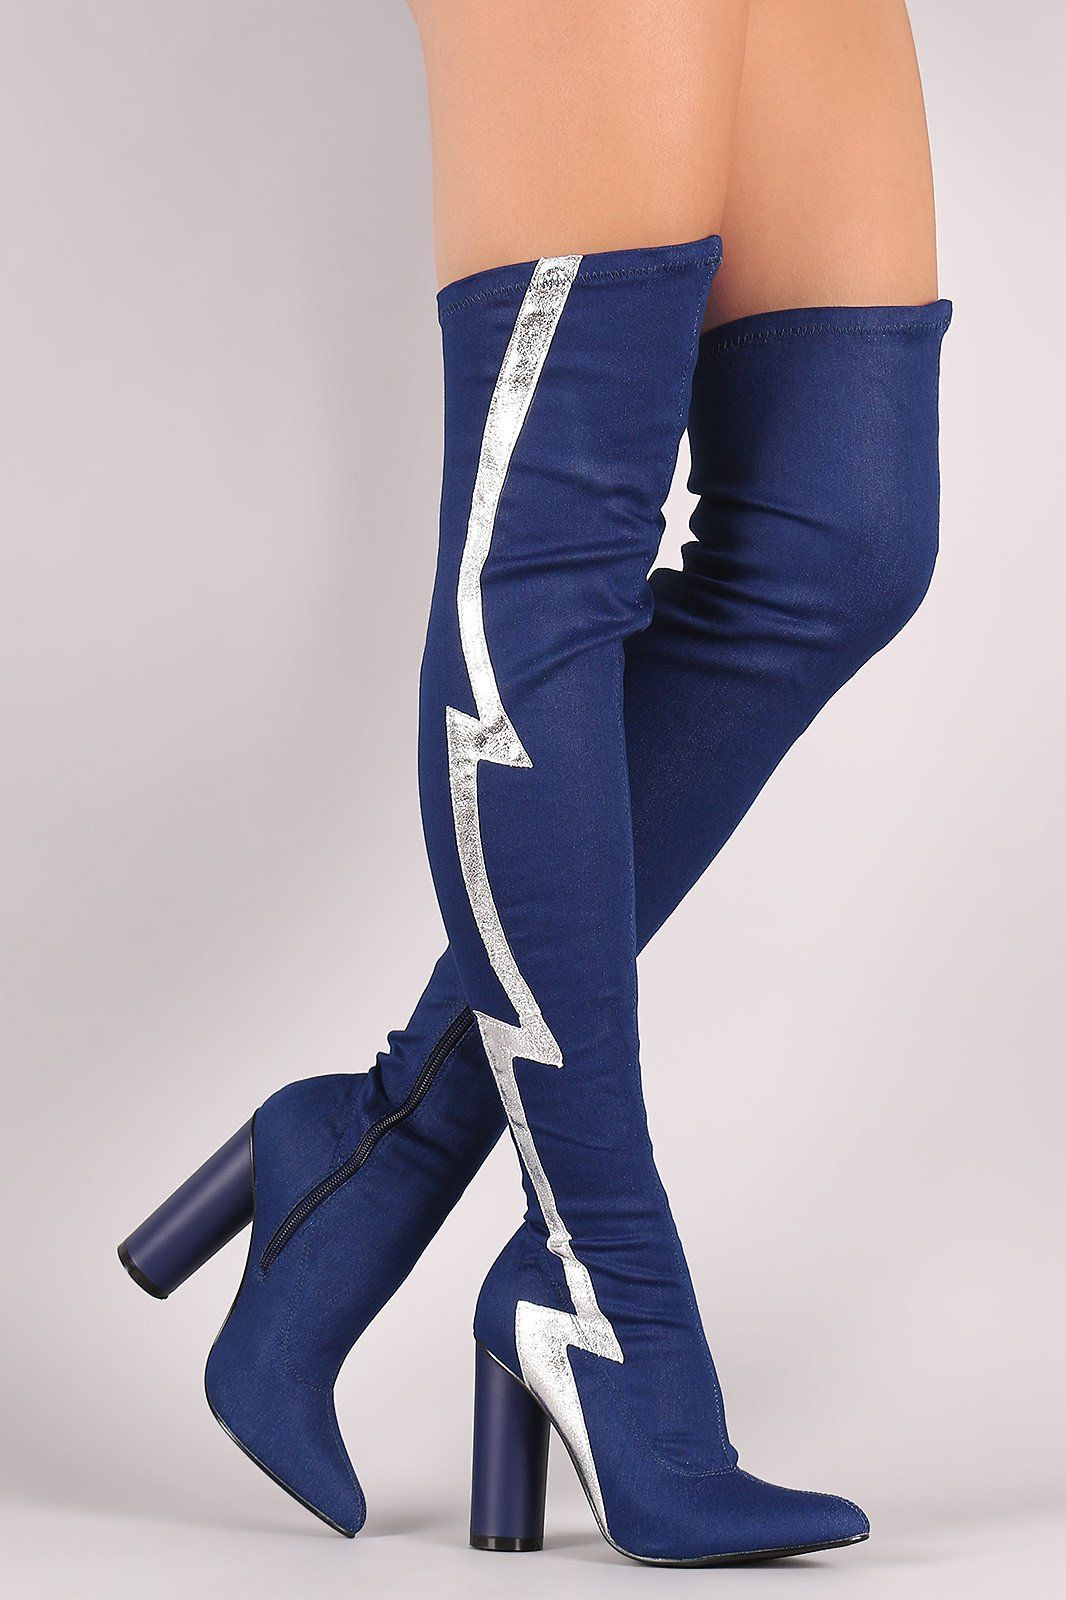 bfc8c1a25db Lightning Bolt Round Heeled Over-The-Knee Denim Boots | Crazy Cool ...